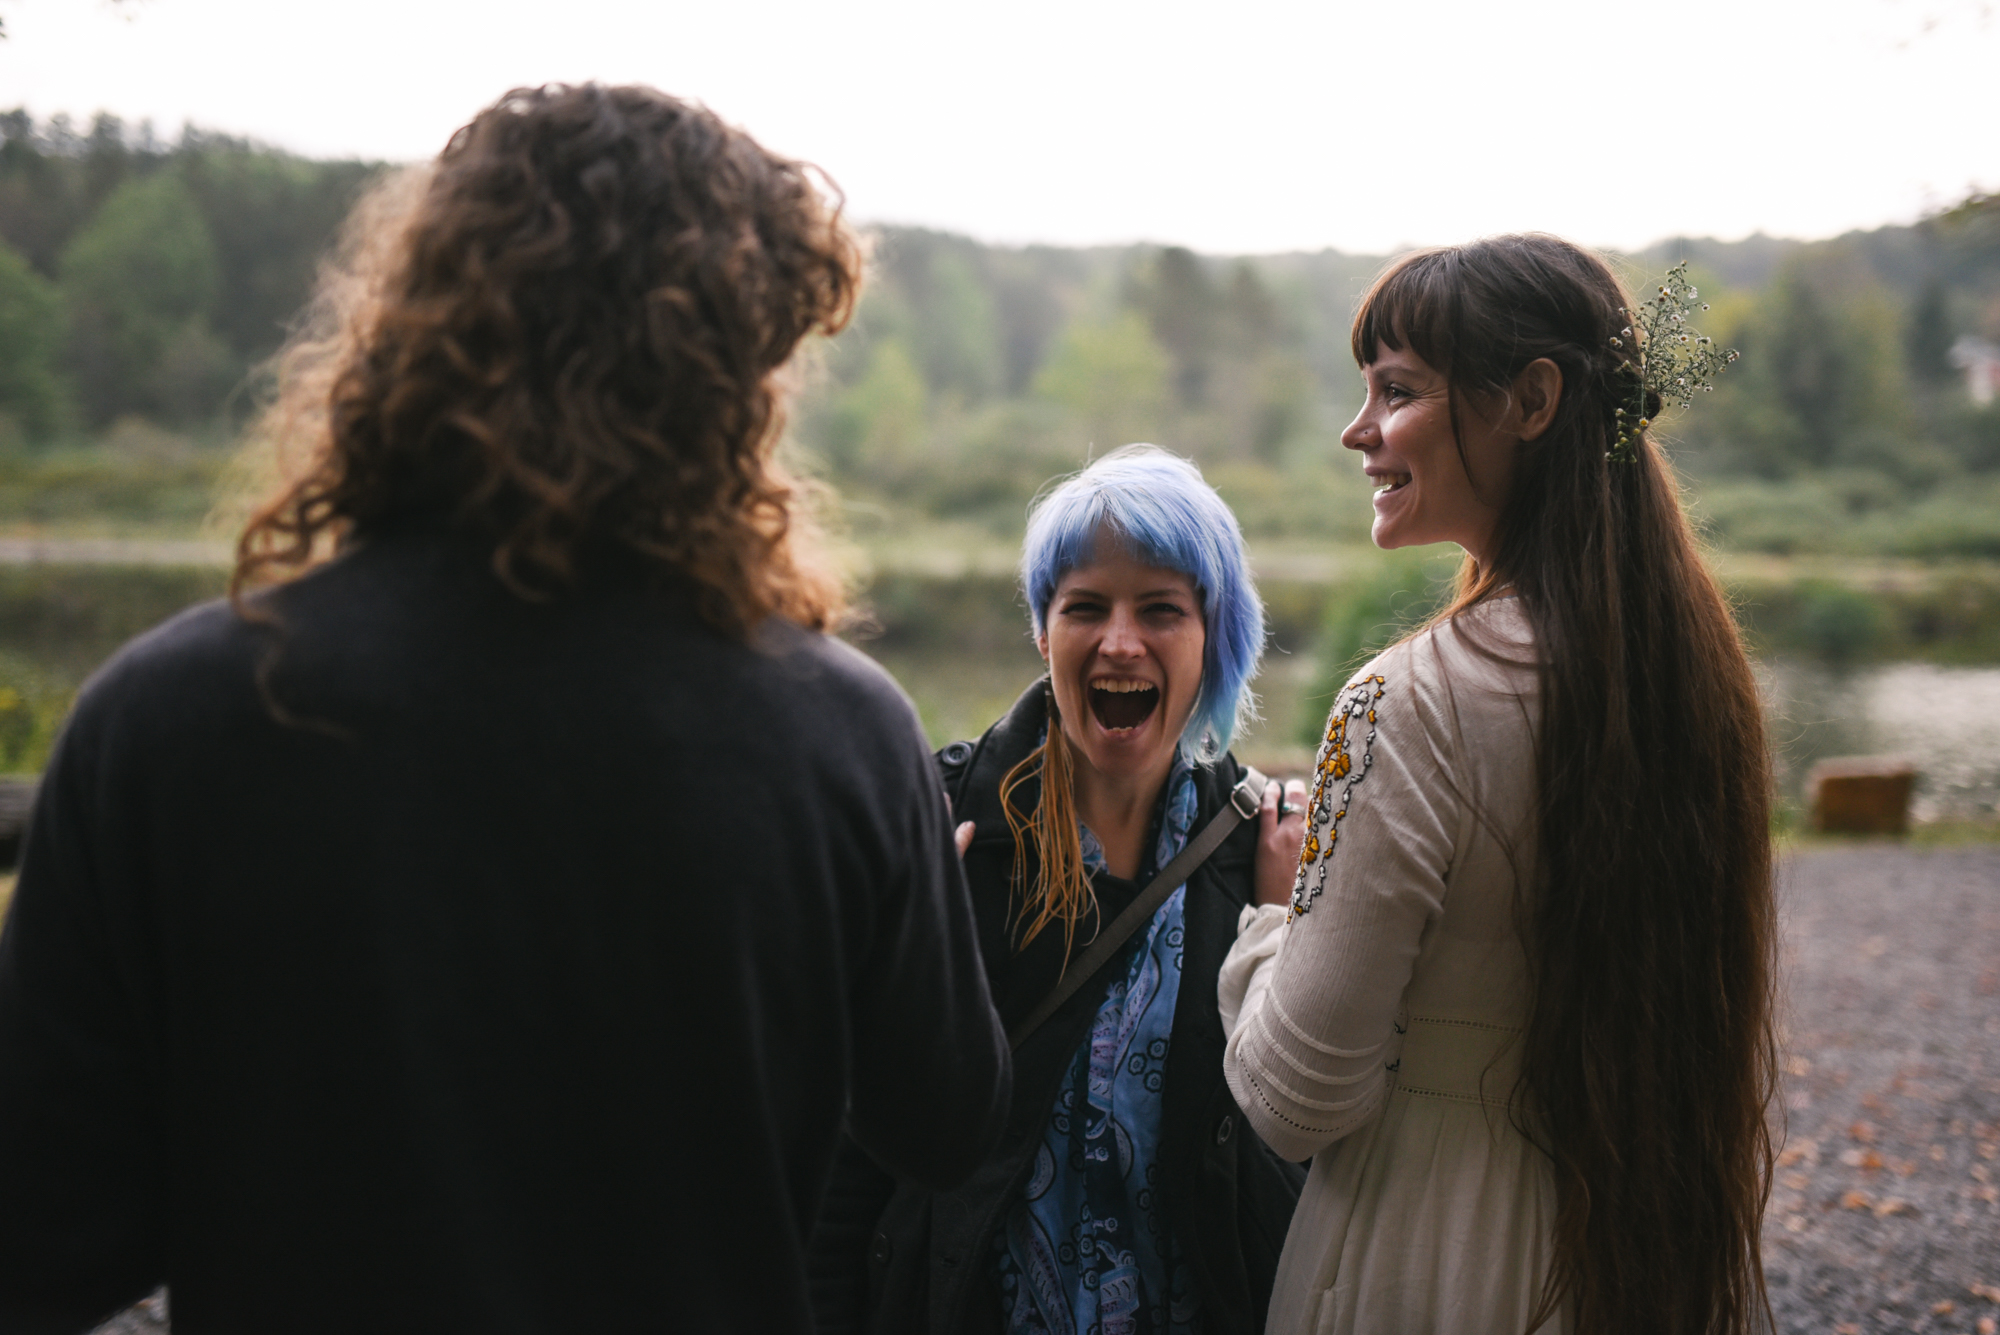 Mountain Wedding, Outdoors, Rustic, West Virginia, Maryland Wedding Photographer, DIY, Casual, friends laughing with bride